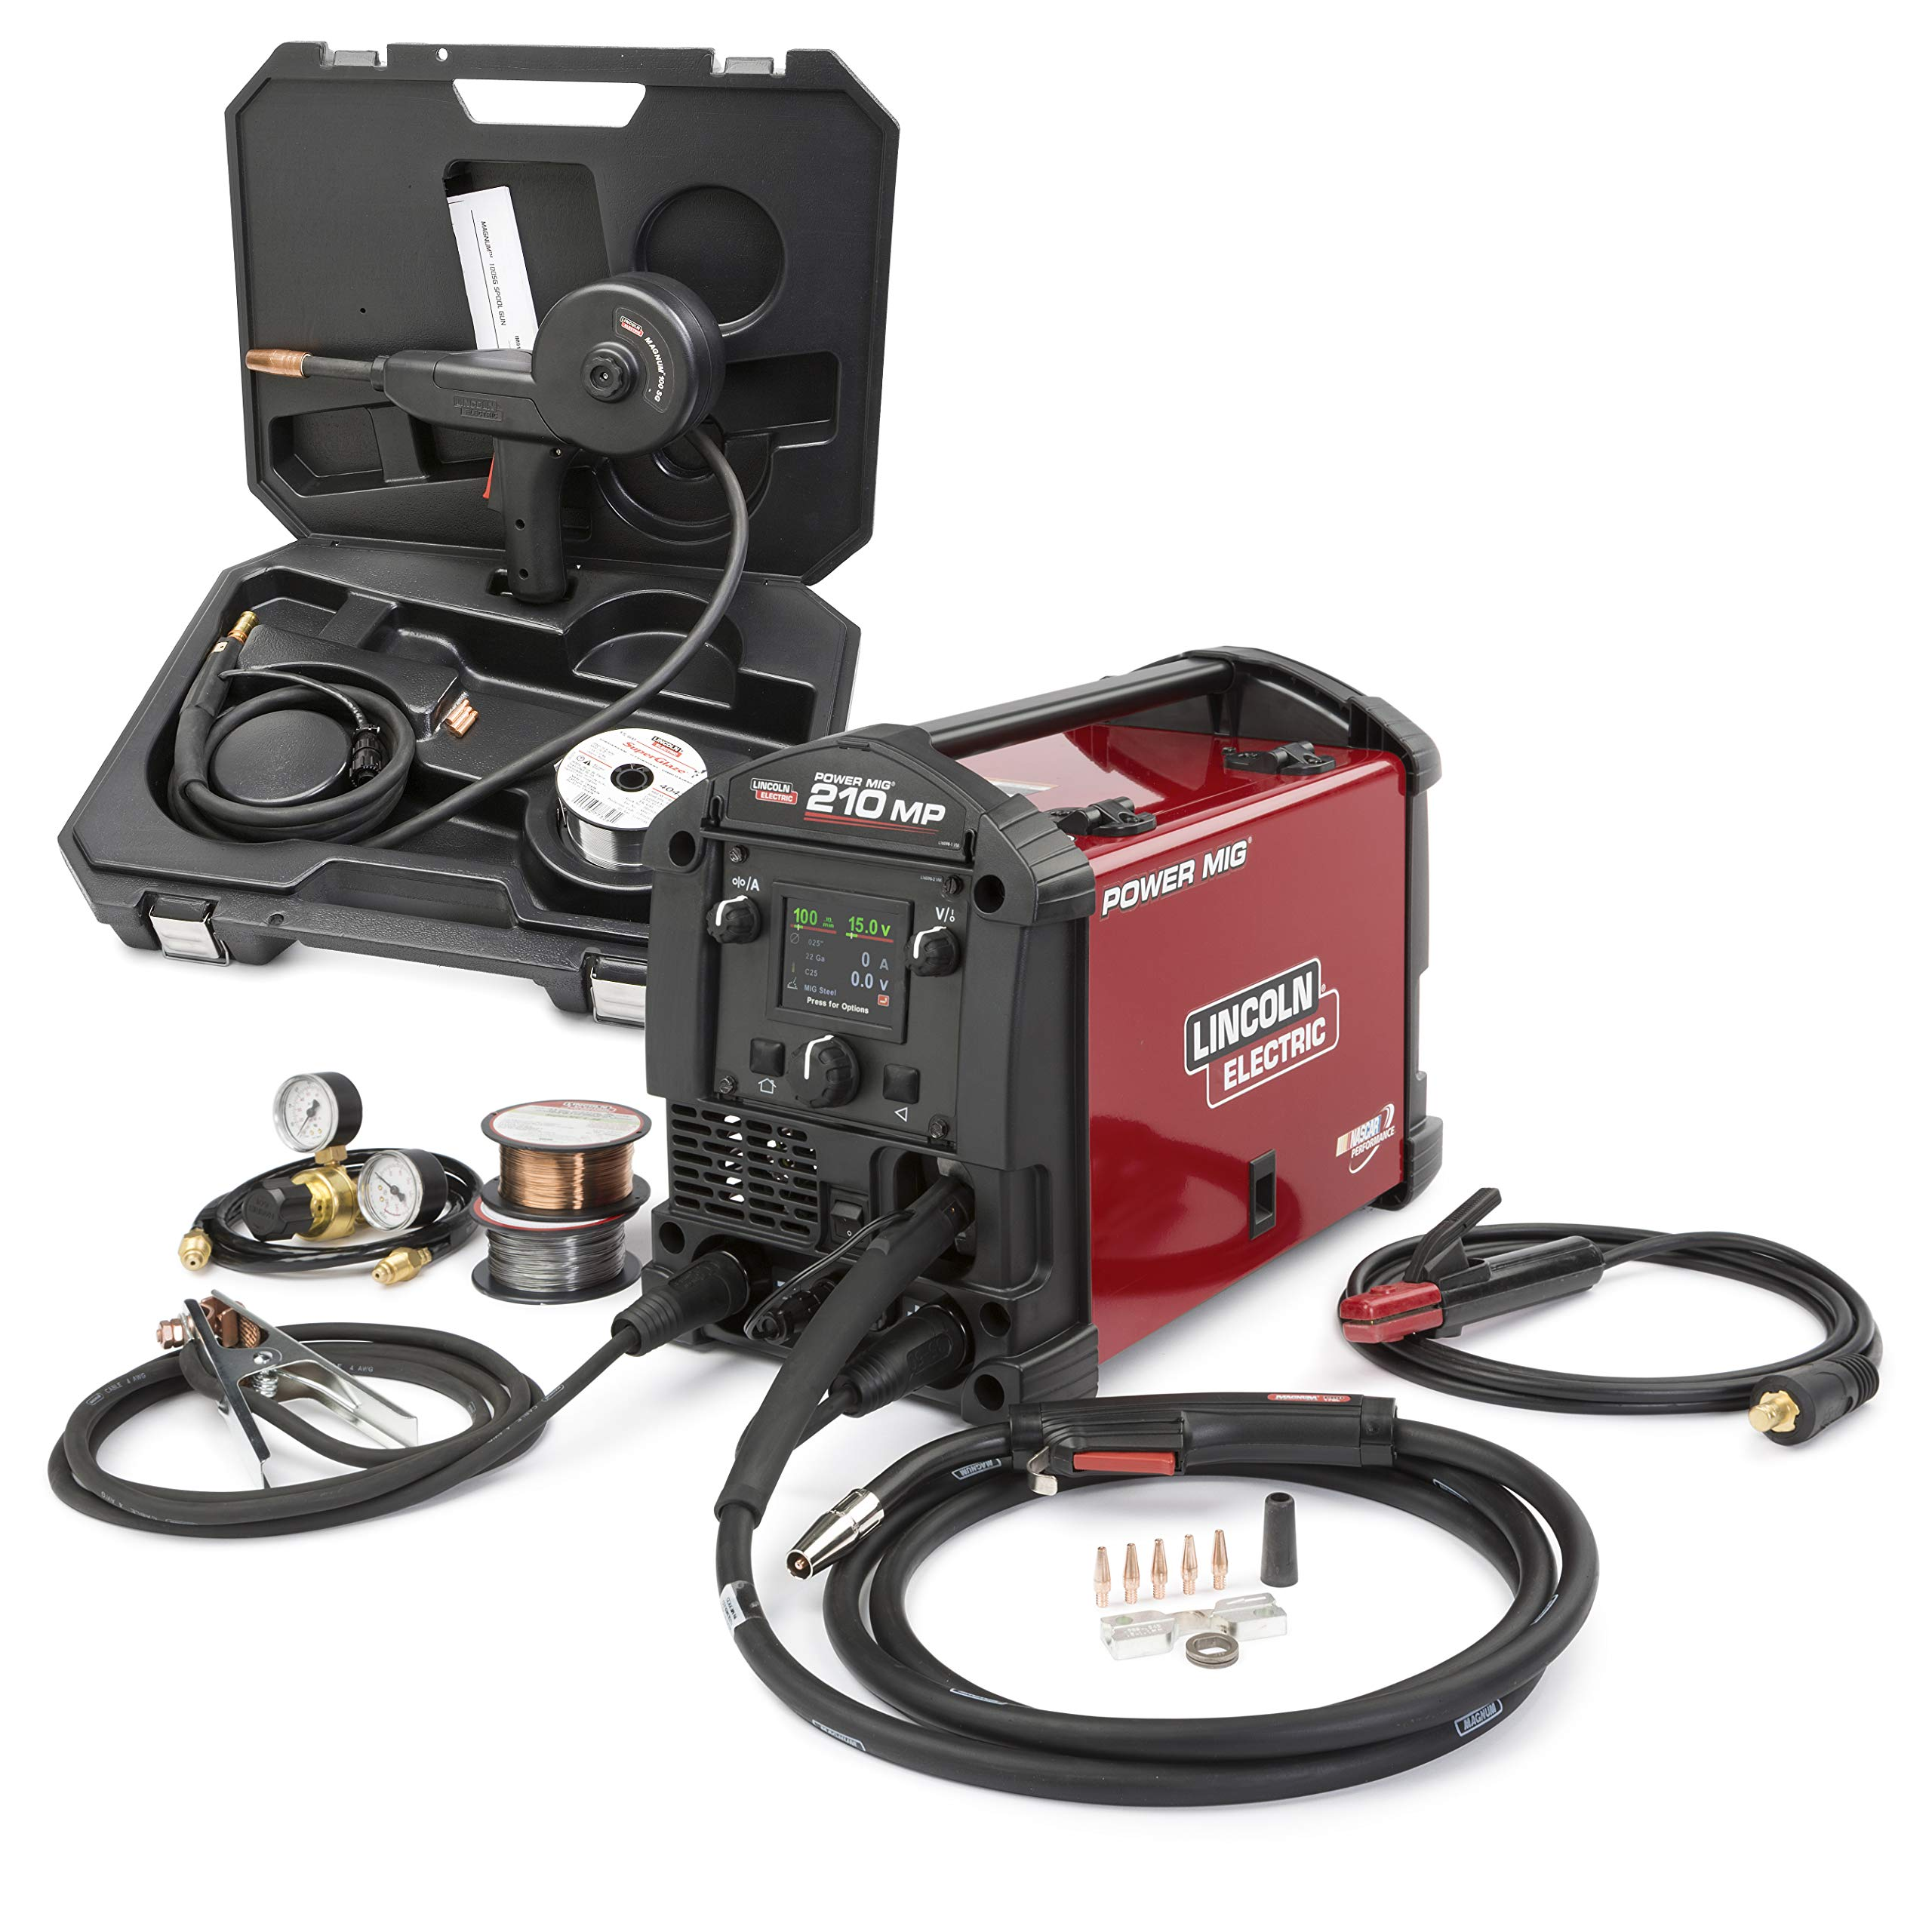 Lincoln Electric POWER MIG 210 MP Multi-Process Welder Aluminum One-Pak - K4195-1 by Lincoln Electric